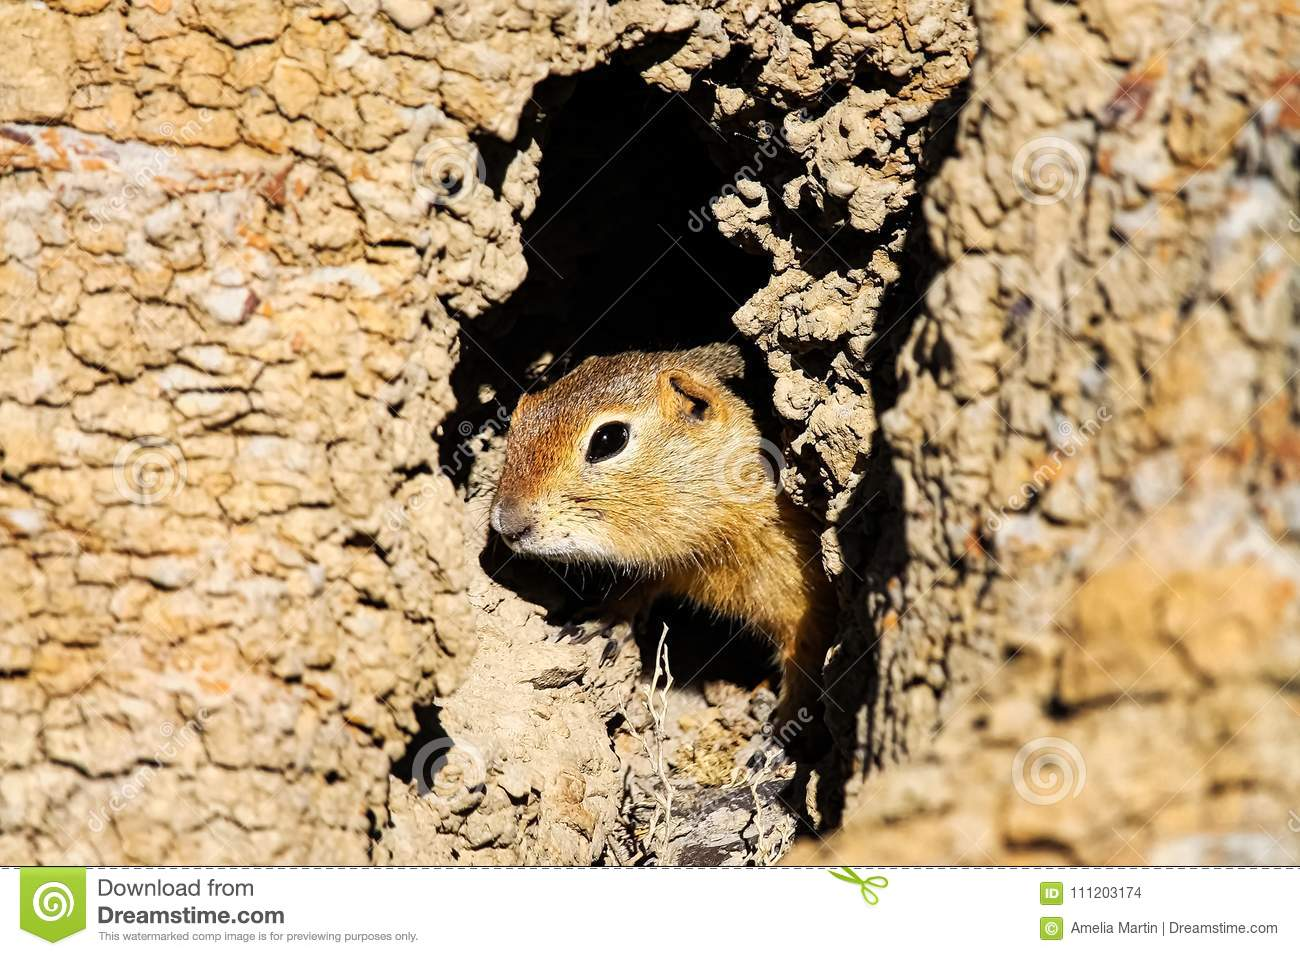 A Richardsons Ground Squirrel looks out of its hole